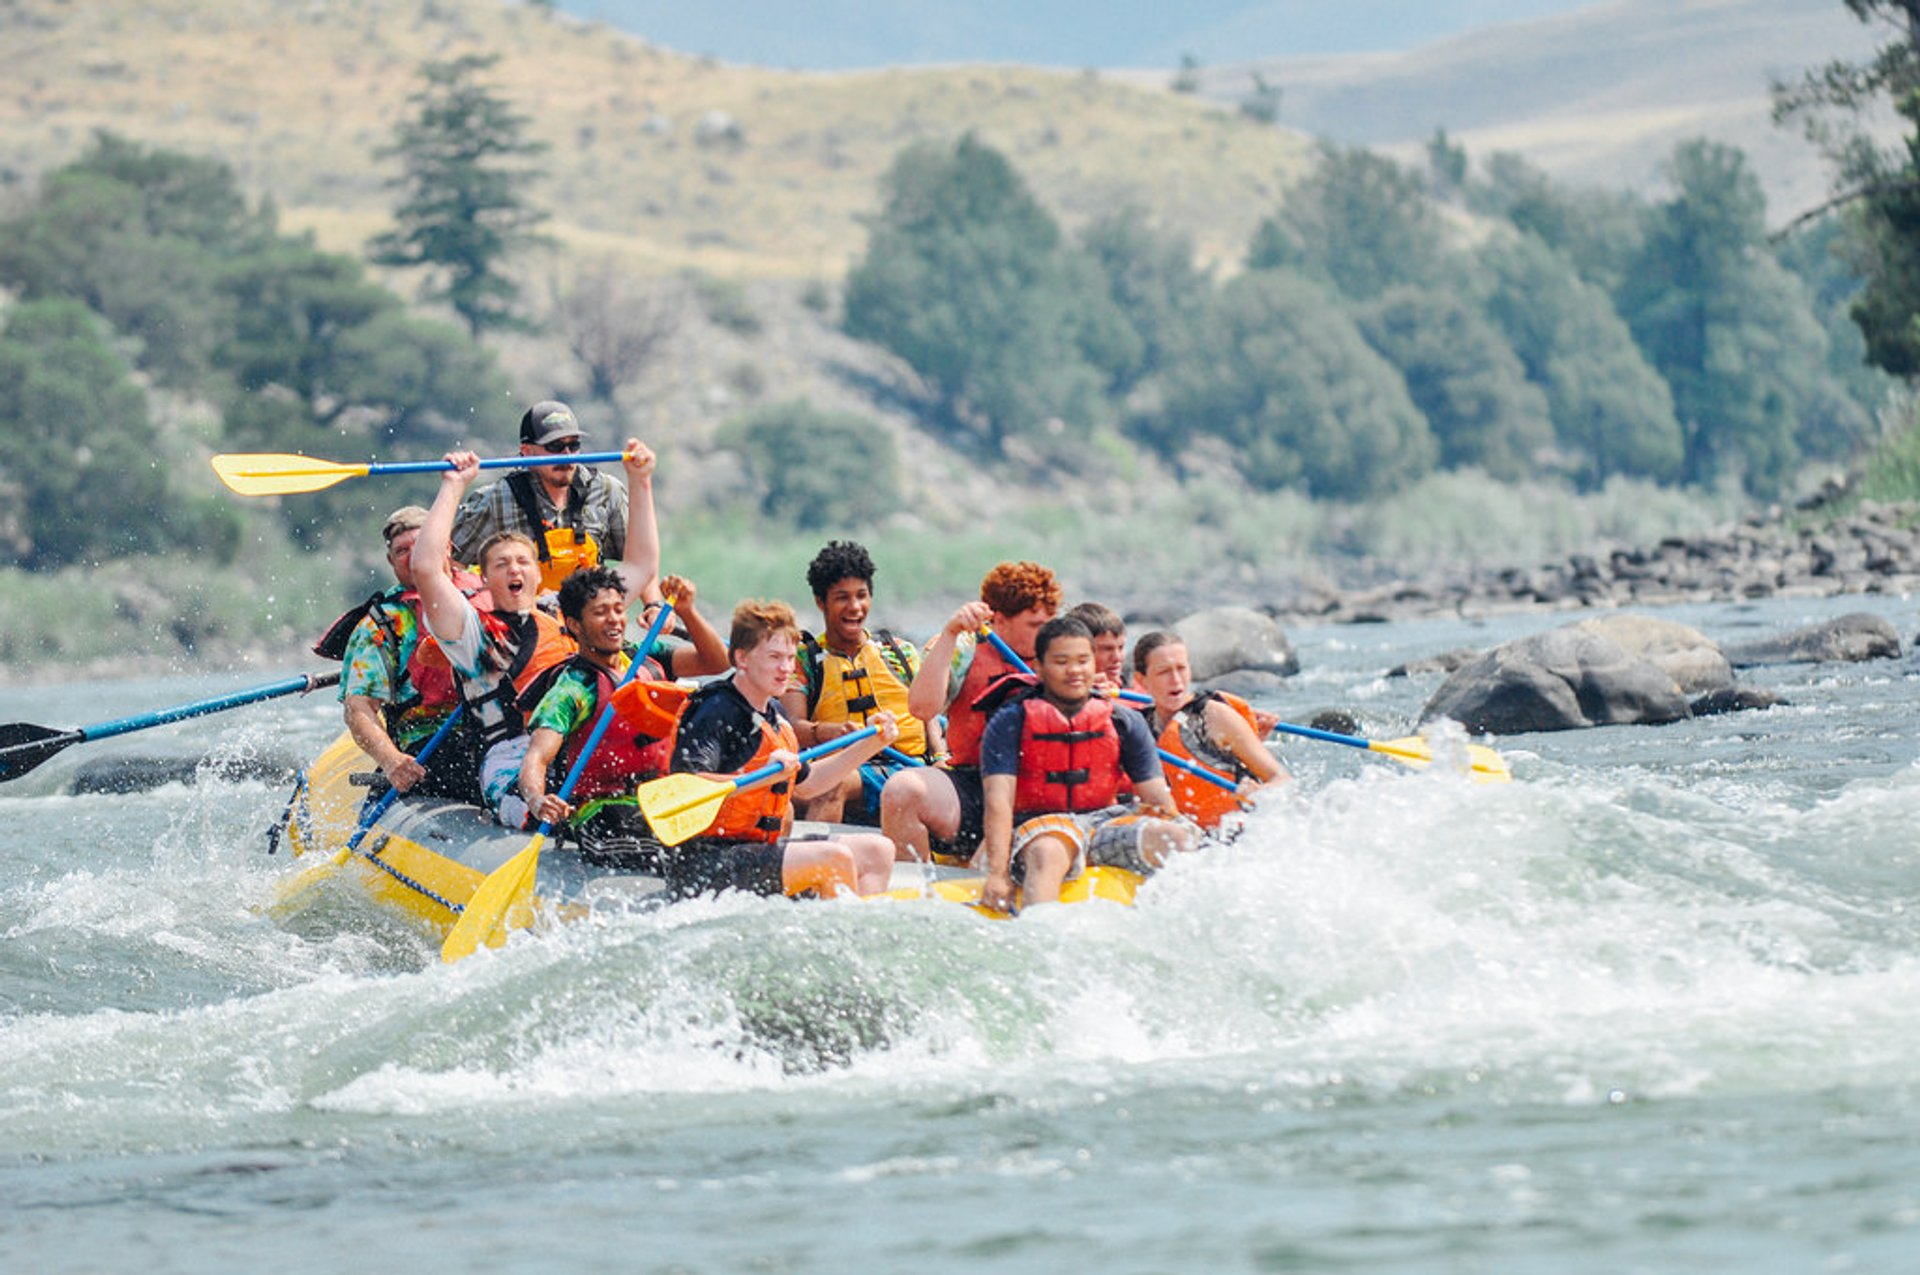 Rafting in Yellowstone National Park 2020 - Best Time